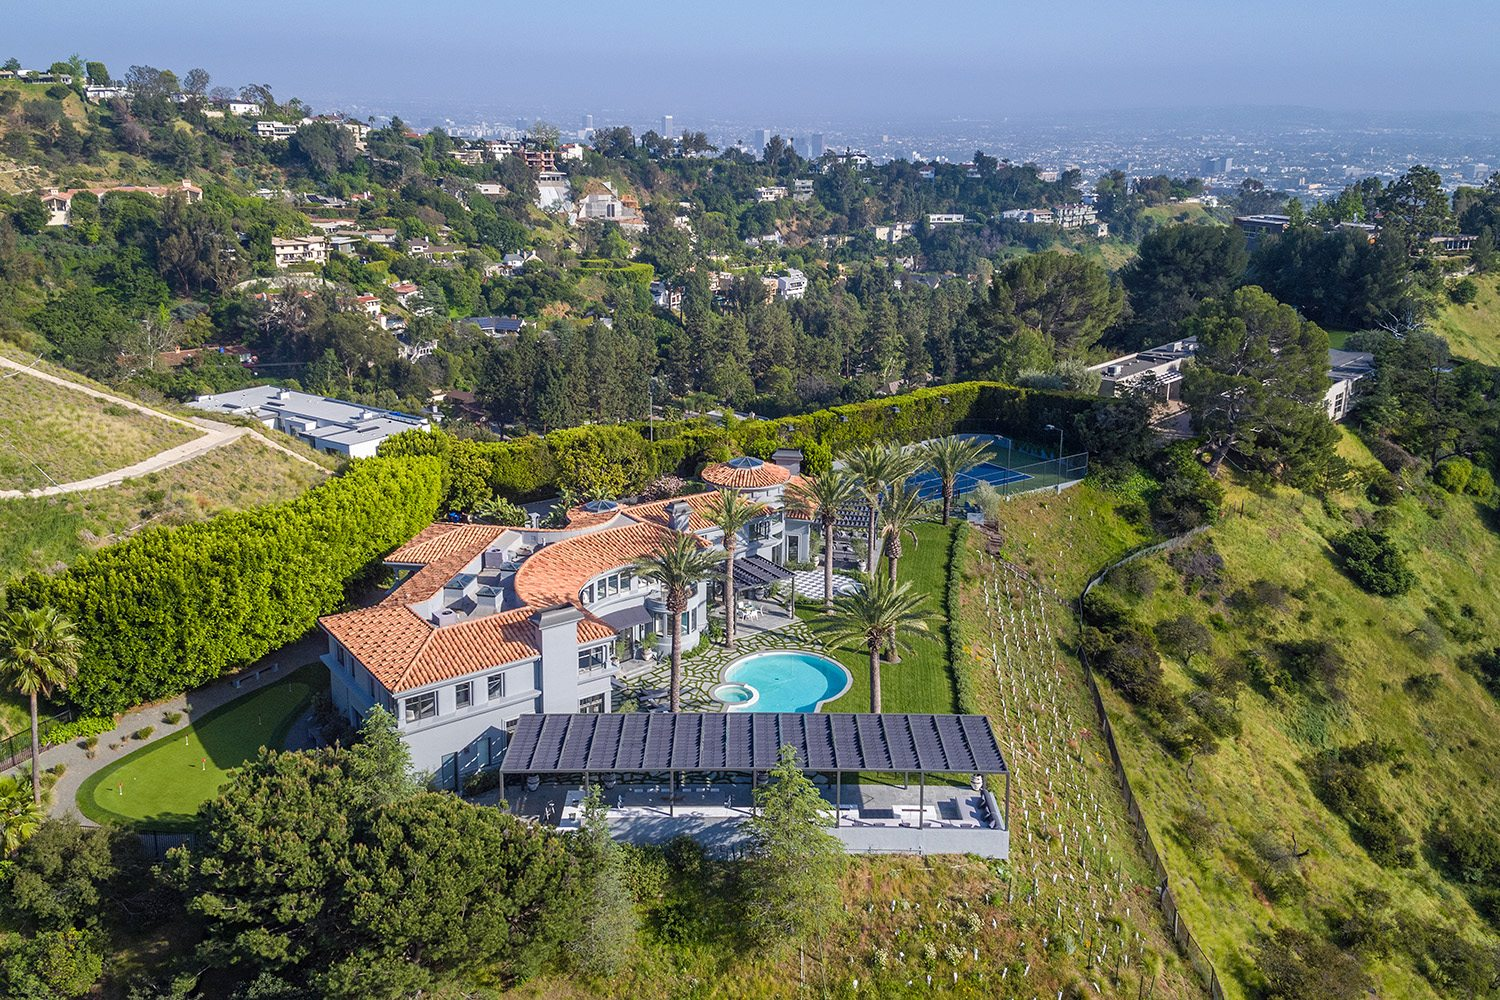 Cali Comparables The UltraLuxury Edition What M Buys You In - Take look around luxurious property beverley hills